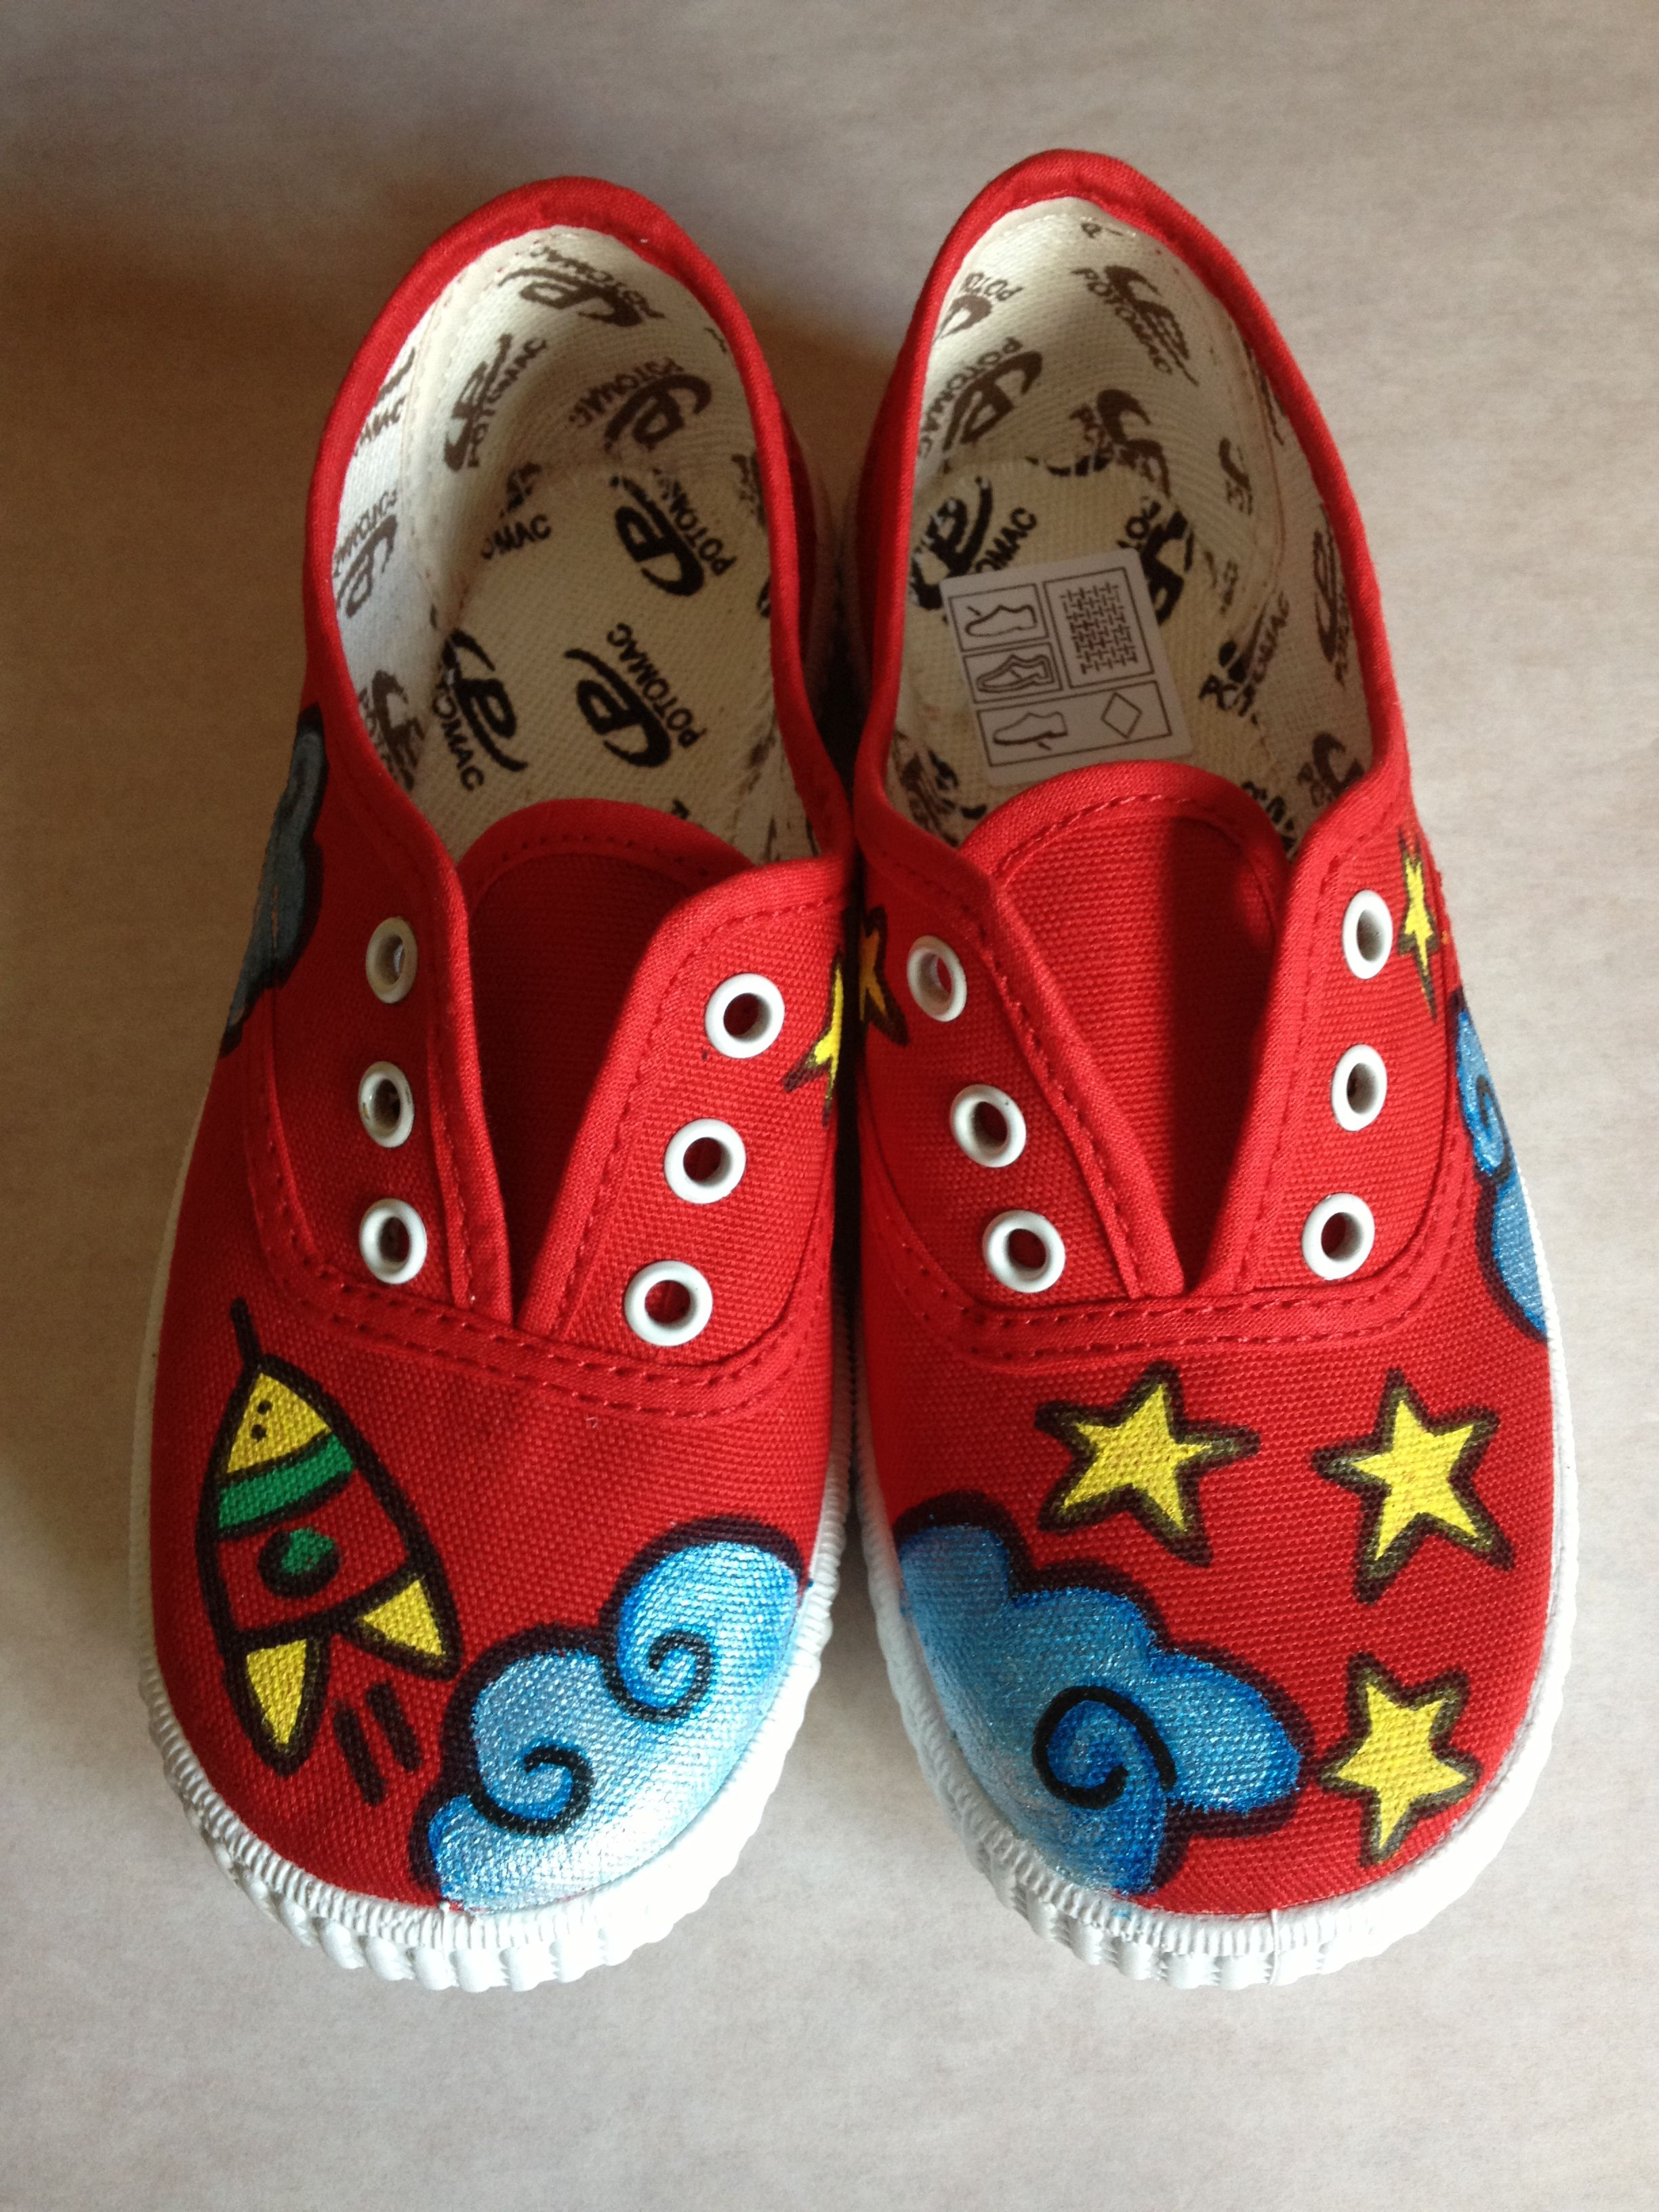 c81587c06 Children s shoes - hand-painted  what fun! Zapatos De Lona Pintados